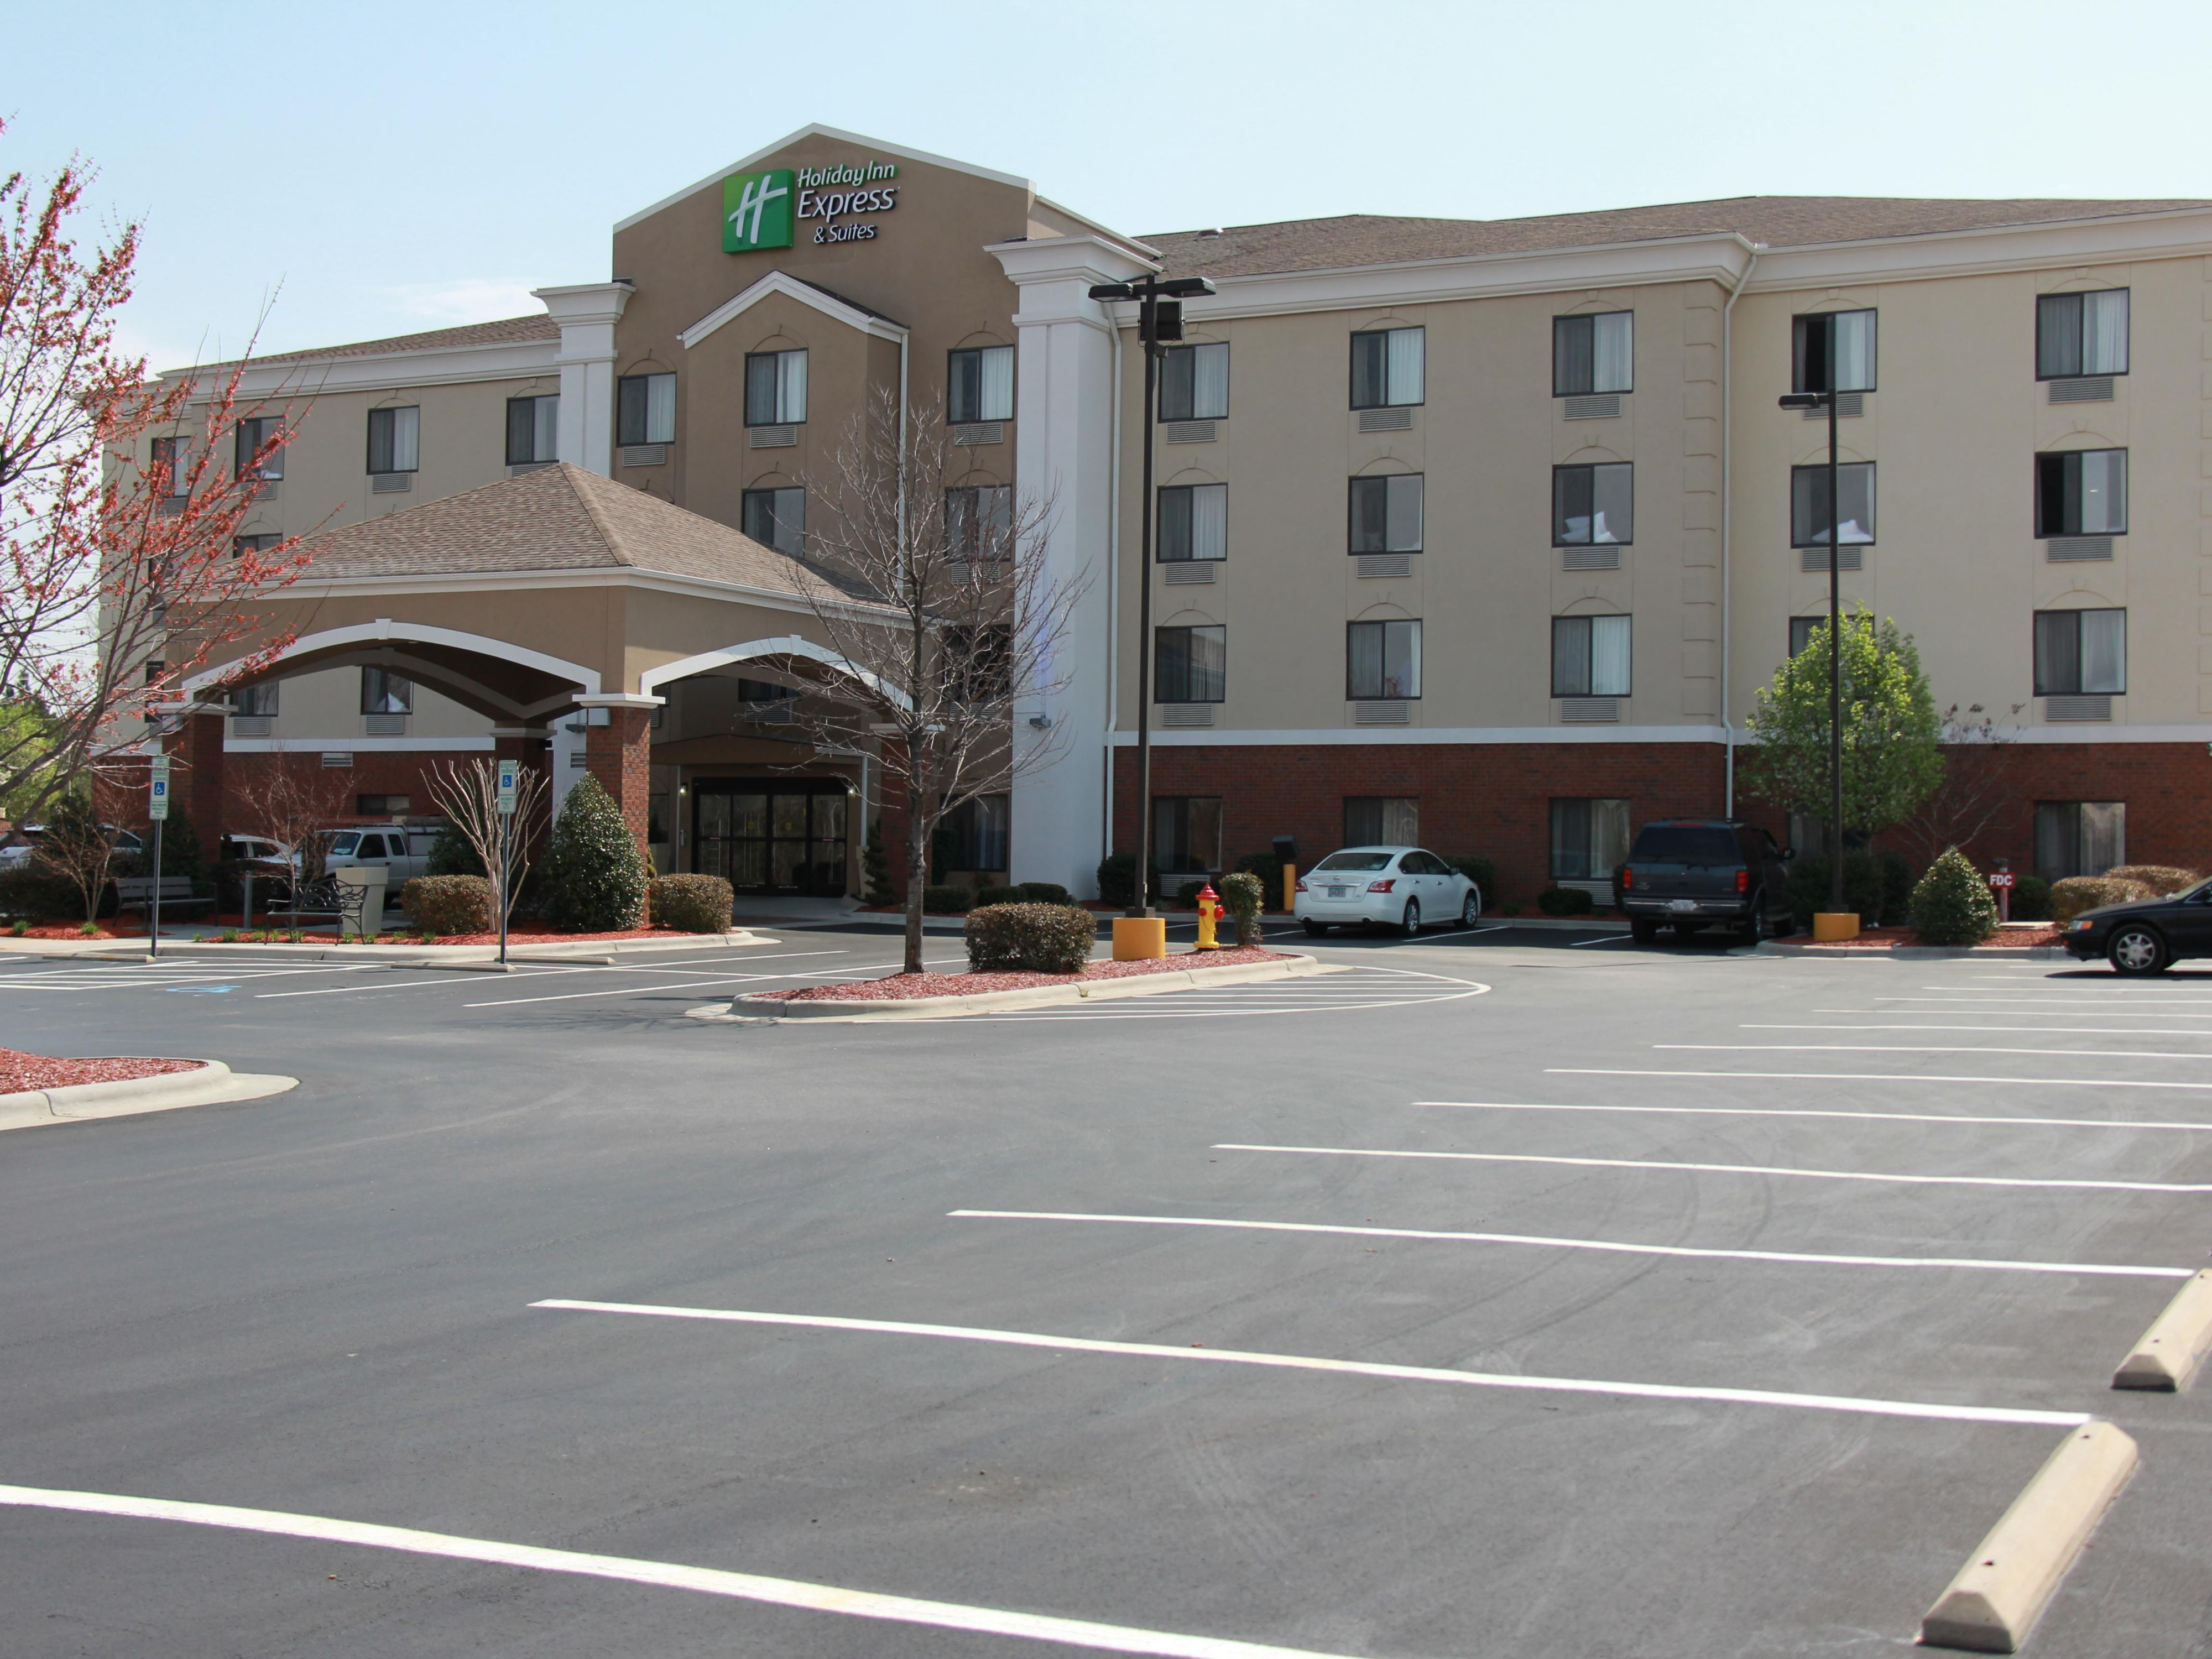 Welcome to the Holiday Inn Express & Suites of Roanoke Rapids, NC!